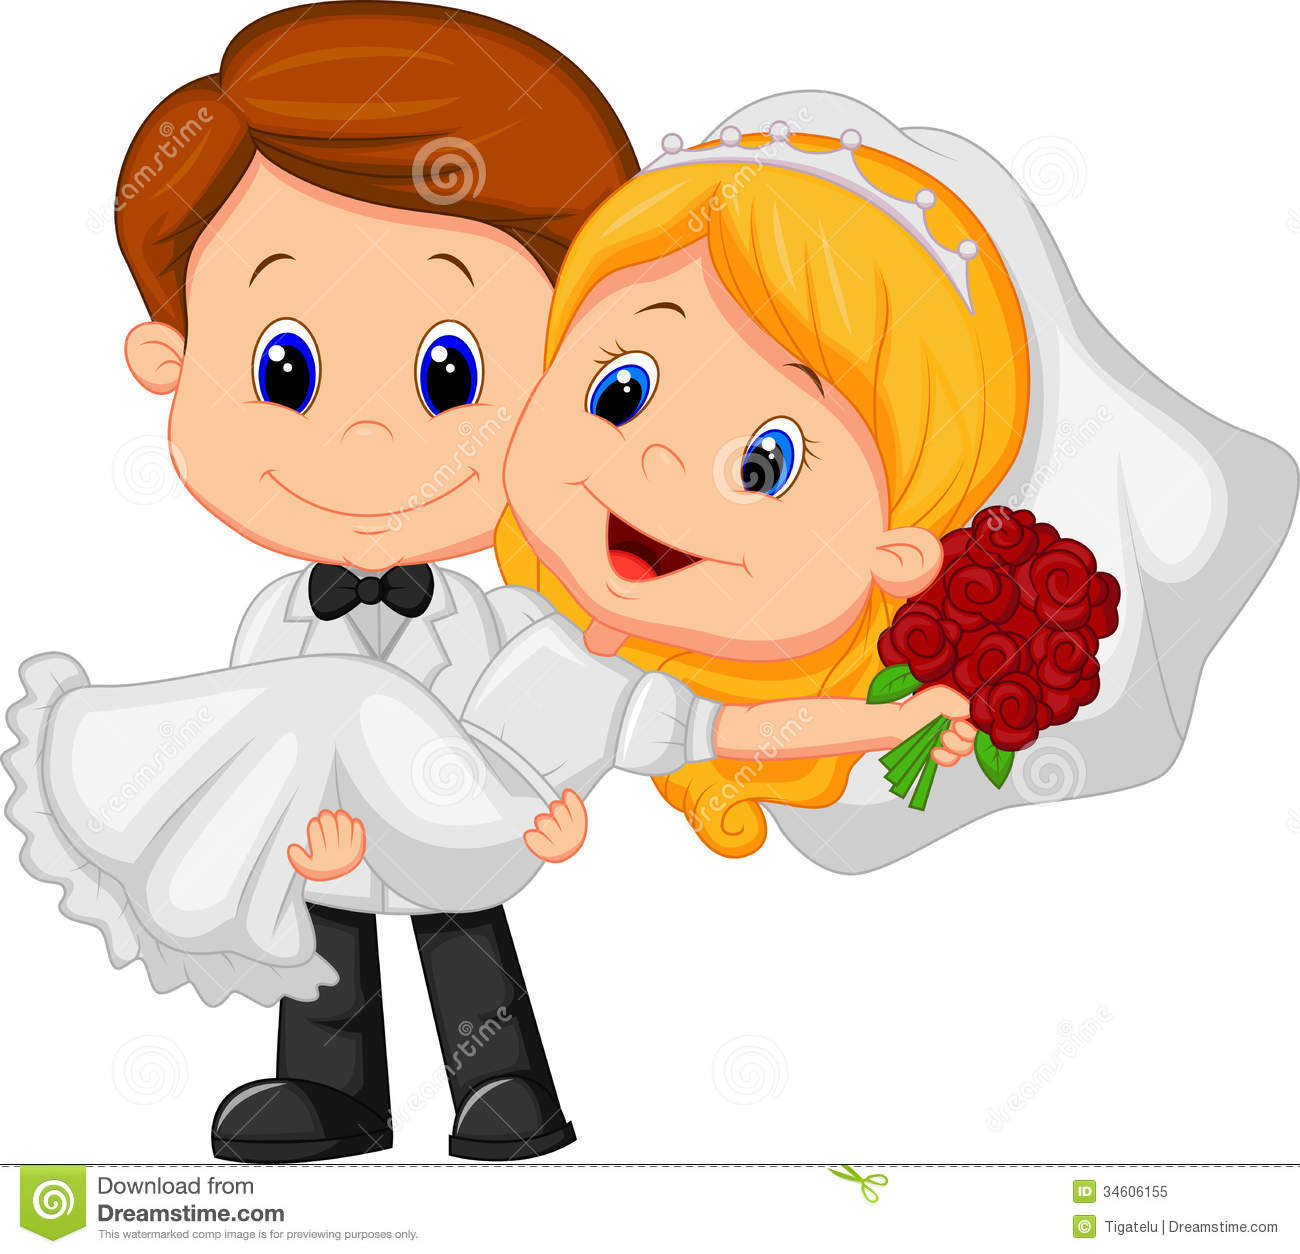 Bride and groom clipart 3 ... a76799a6dd-Bride and groom clipart 3 ... a76799a6dd6a3cbc69ecf324211ee5 .-15